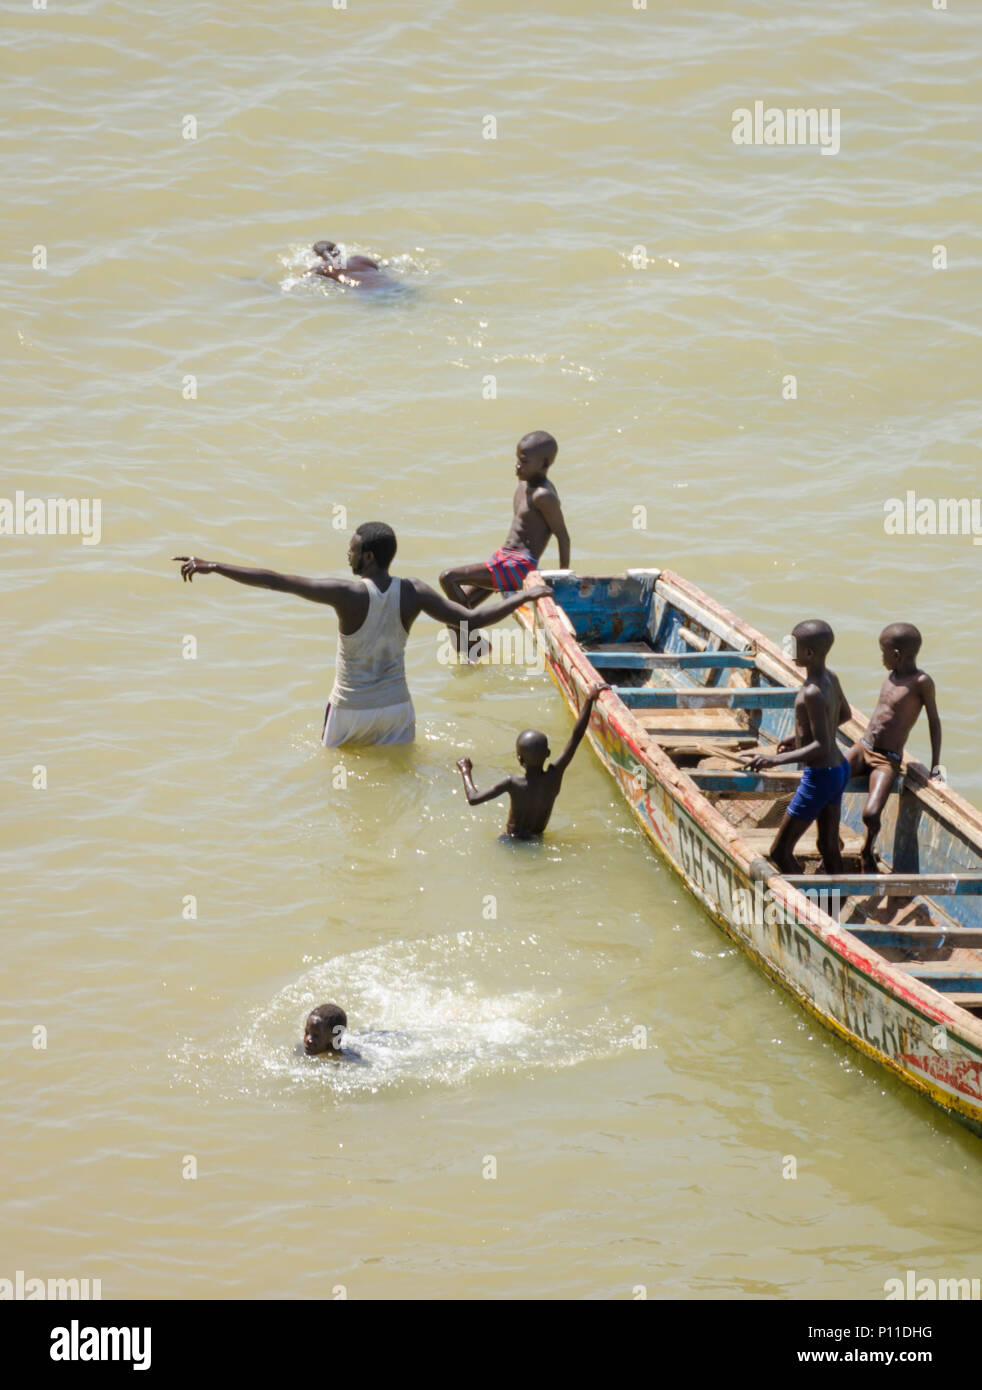 Saint-Louis, Senegal - October 20, 2013: Unidentified African children and grown man swimming next to wooden boat - Stock Image